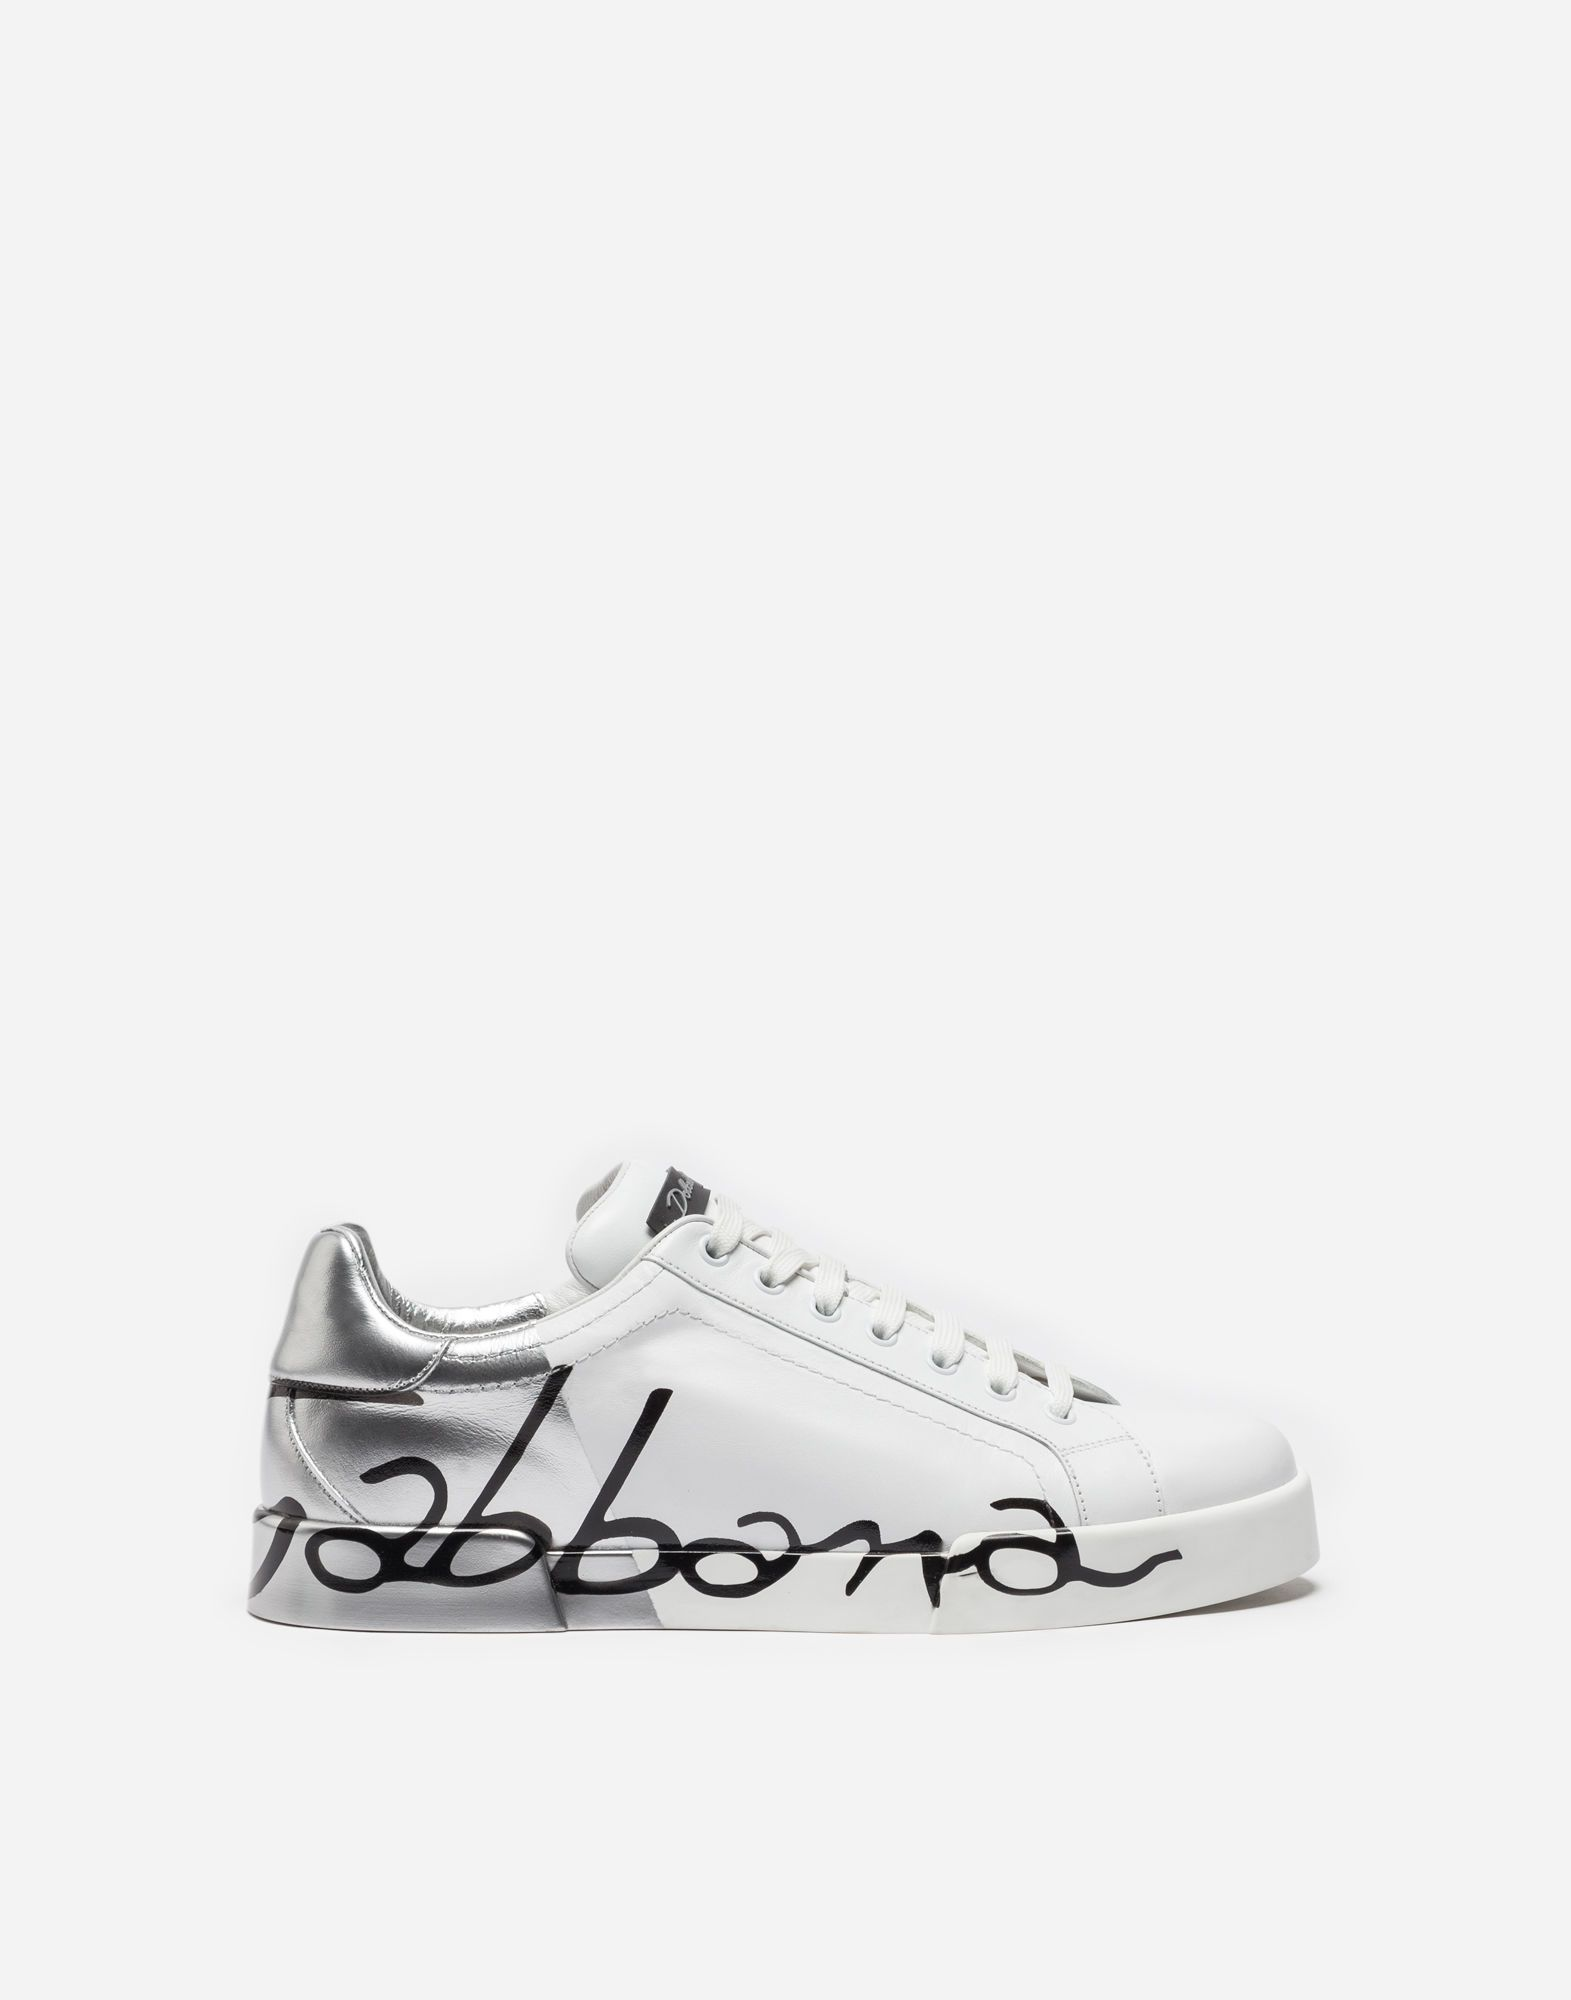 65c06a04cfb DOLCE   GABBANA PORTOFINO SNEAKERS IN LEATHER AND PATENT.  dolcegabbana   shoes